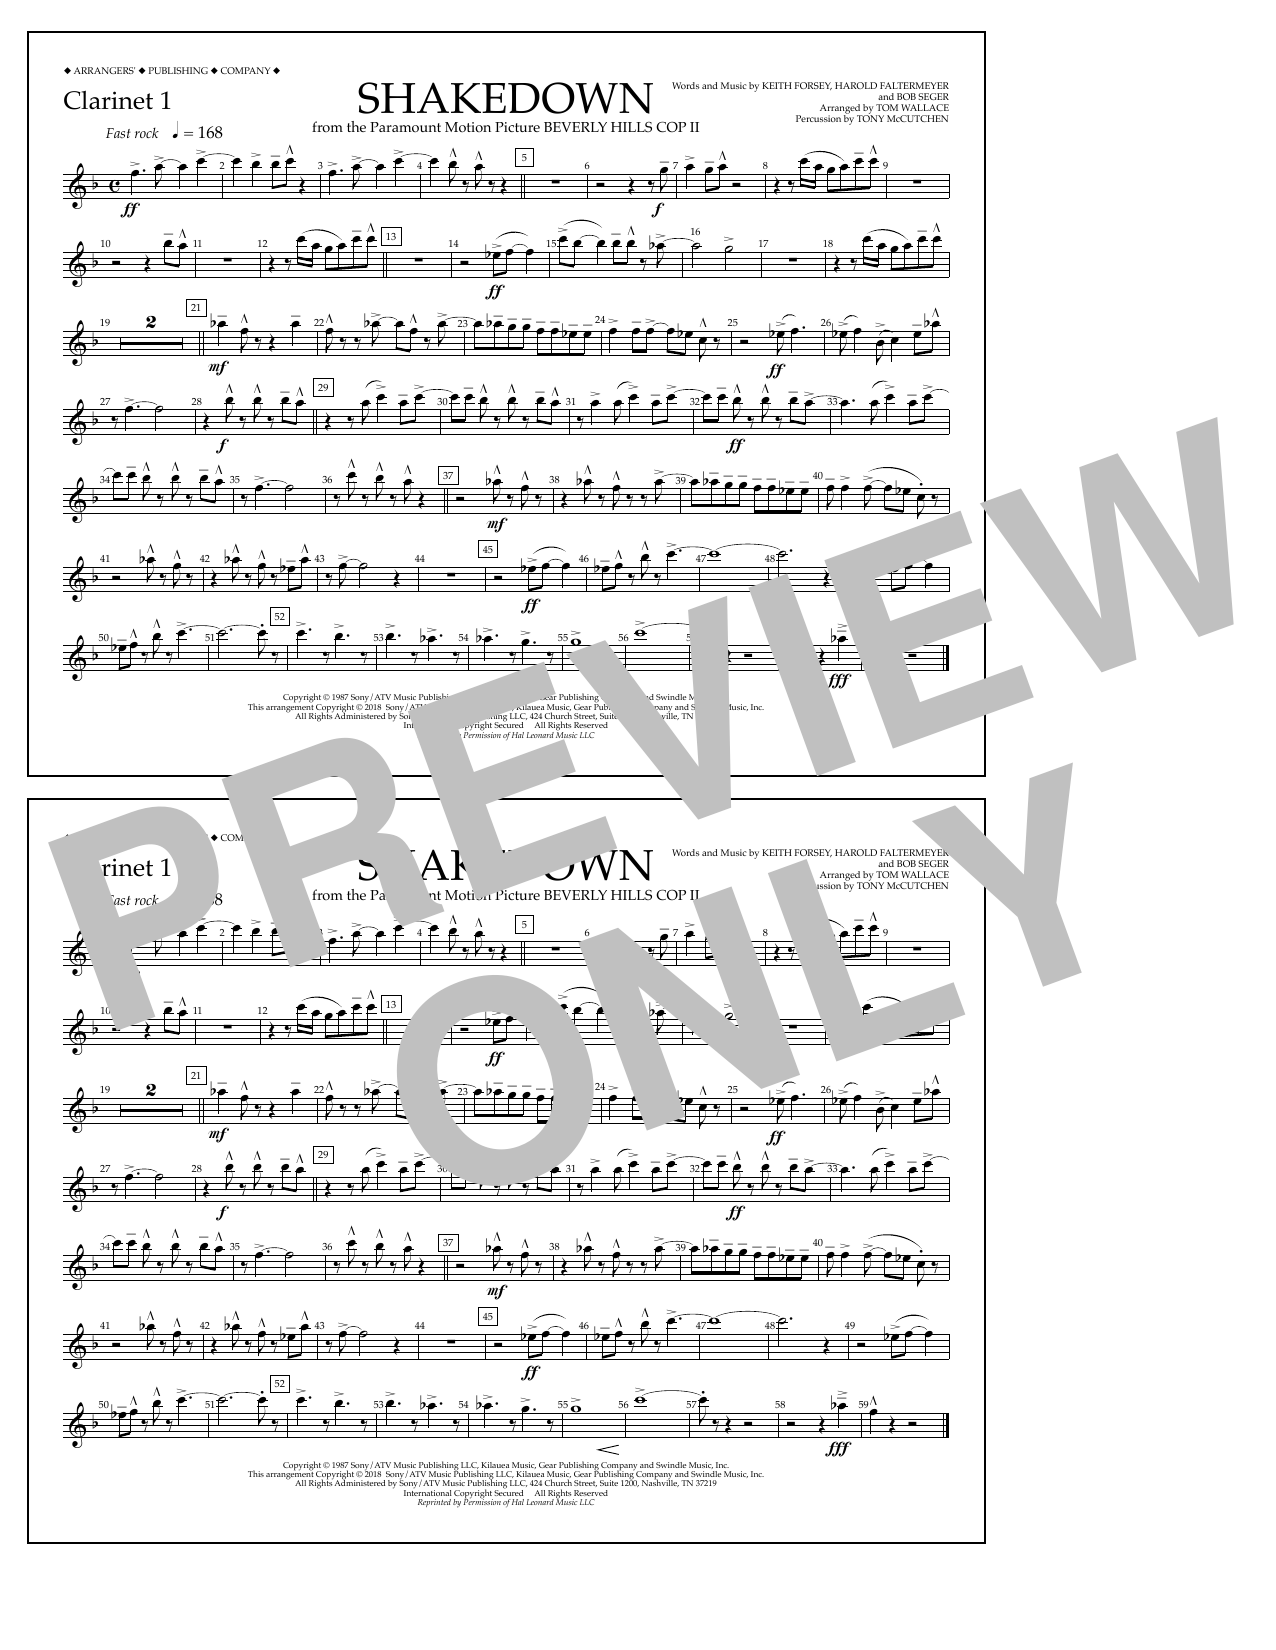 Tom Wallace Shakedown - Clarinet 1 sheet music notes and chords. Download Printable PDF.